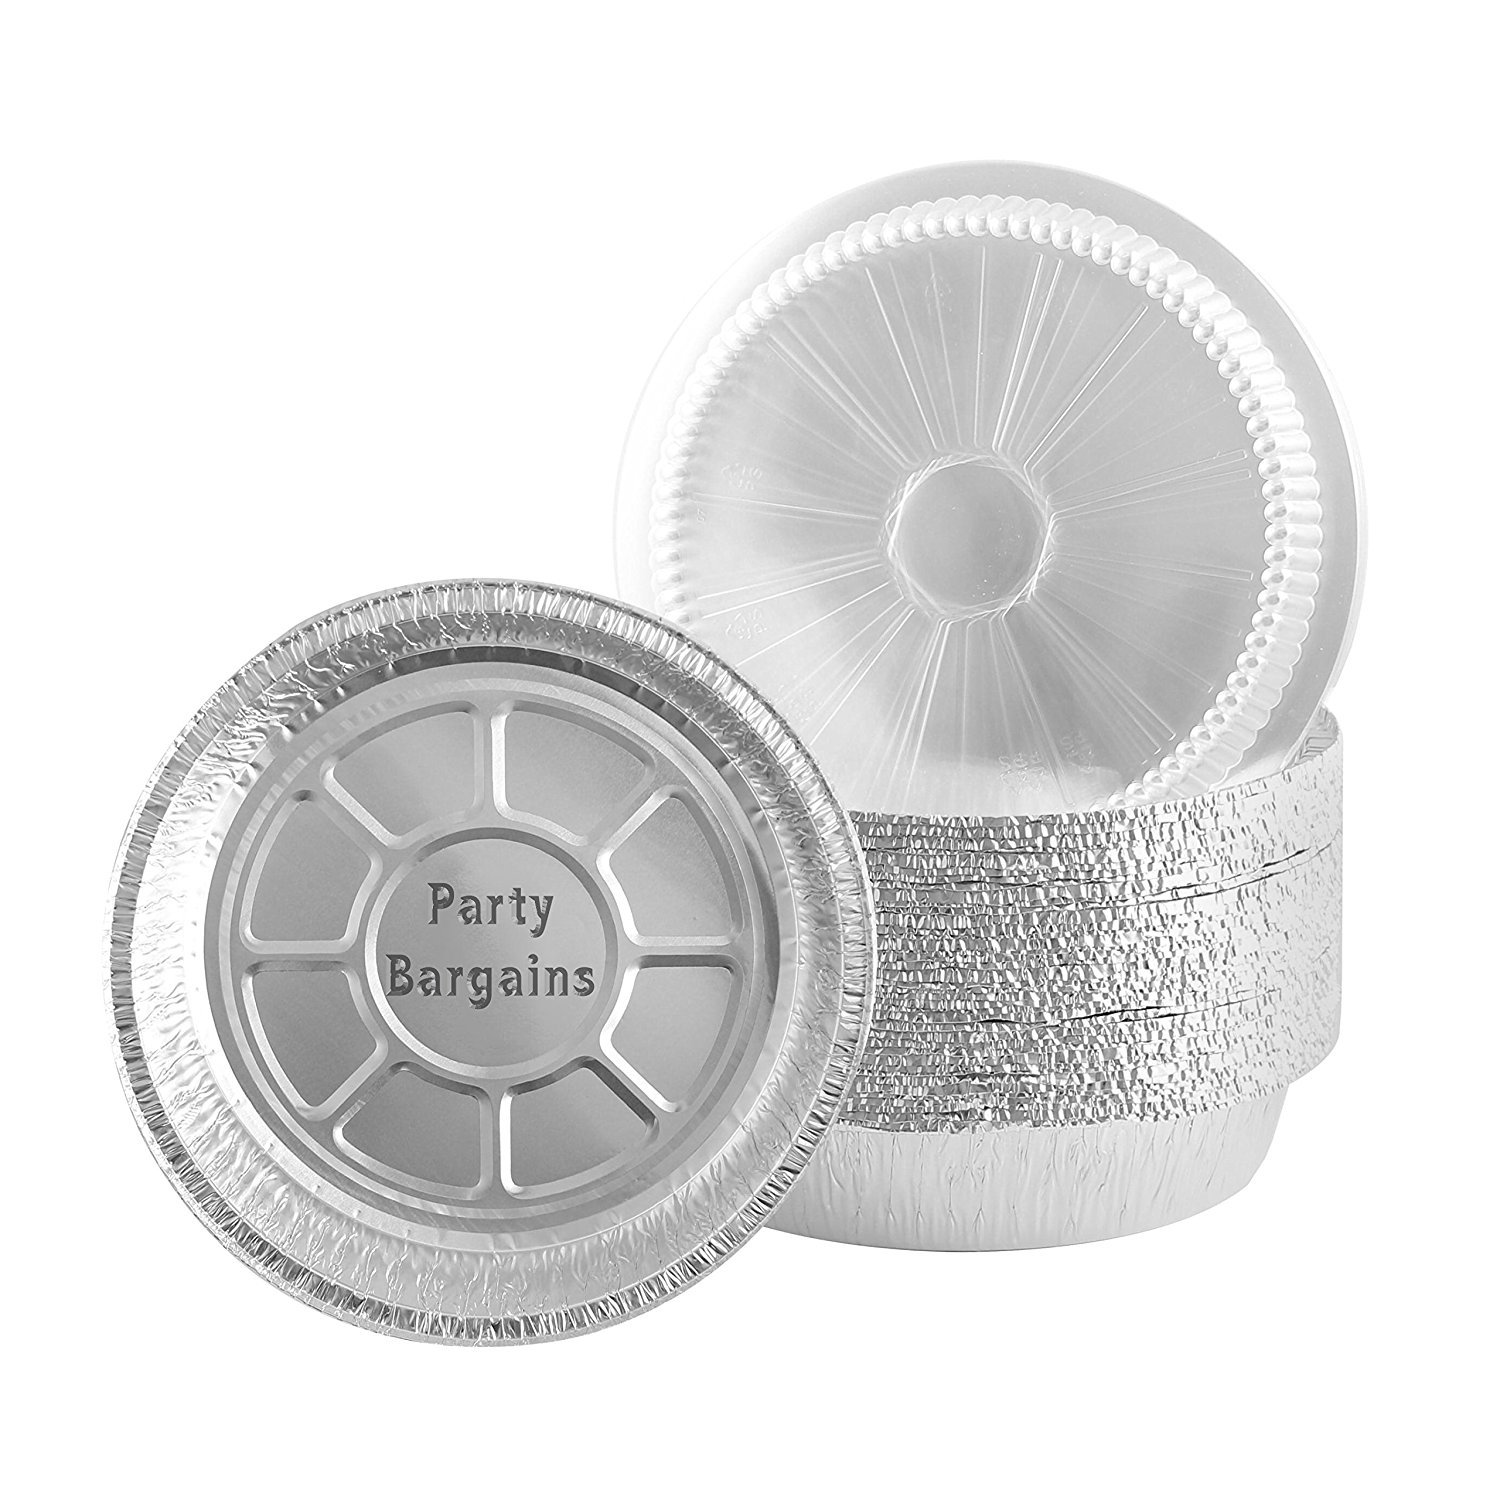 Jetfoil 9 Inch Round Disposable Aluminum Foil Pans With Clear Plastic Lids, Pack Of 40 Sets